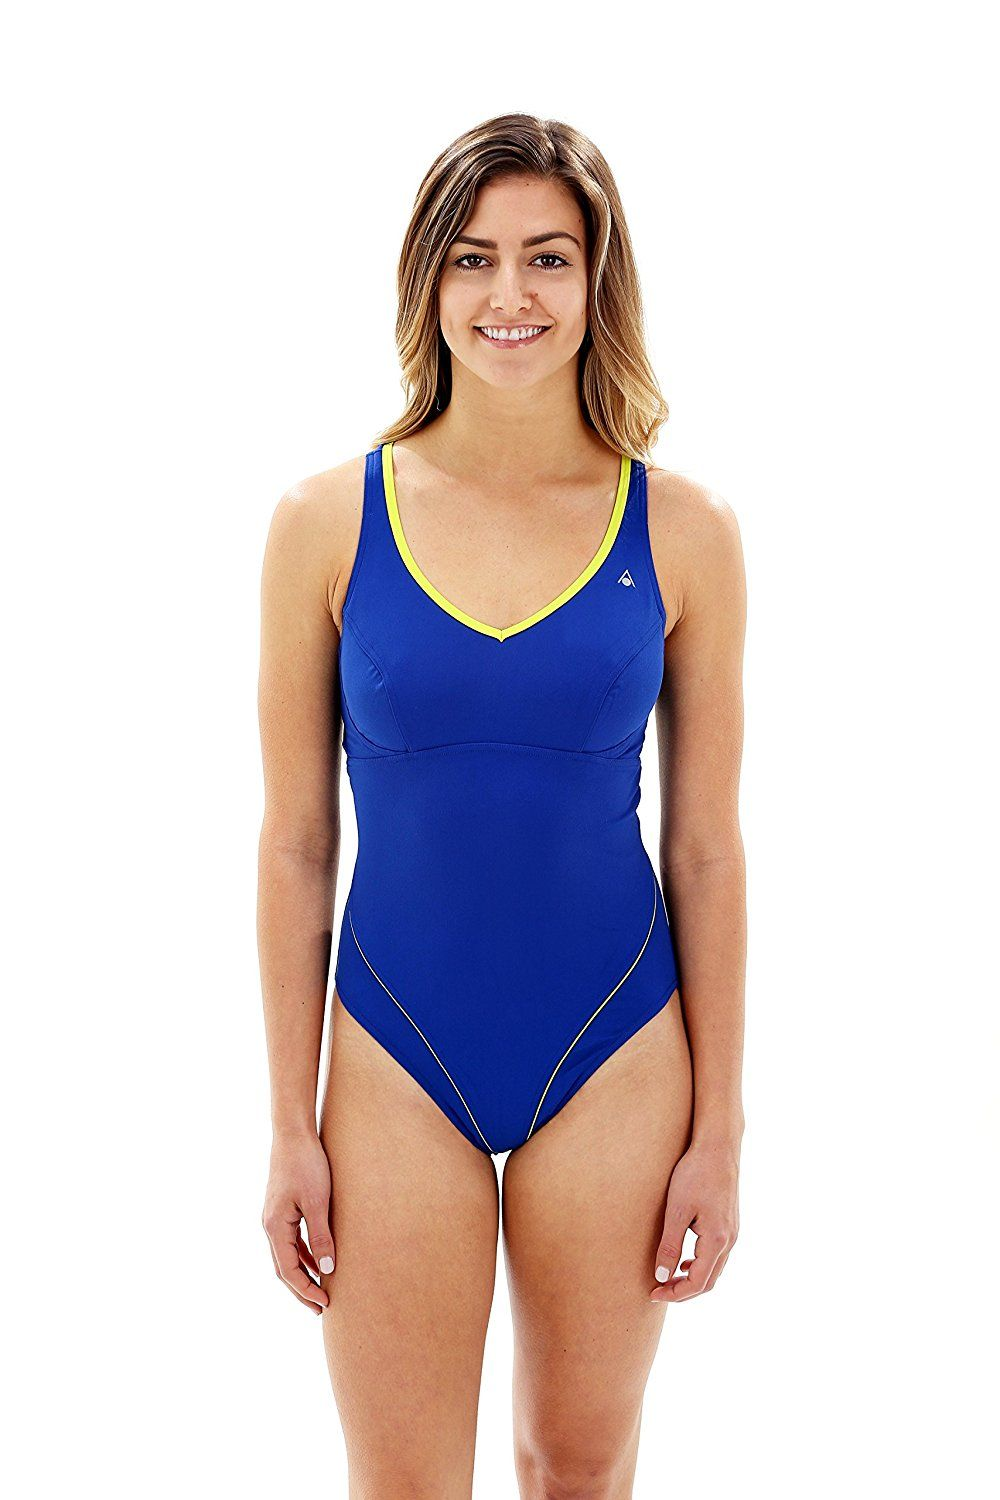 318721821b4 Aqua Sphere Women's Chloe Swimsuit *** Details can be found by clicking on  the image.